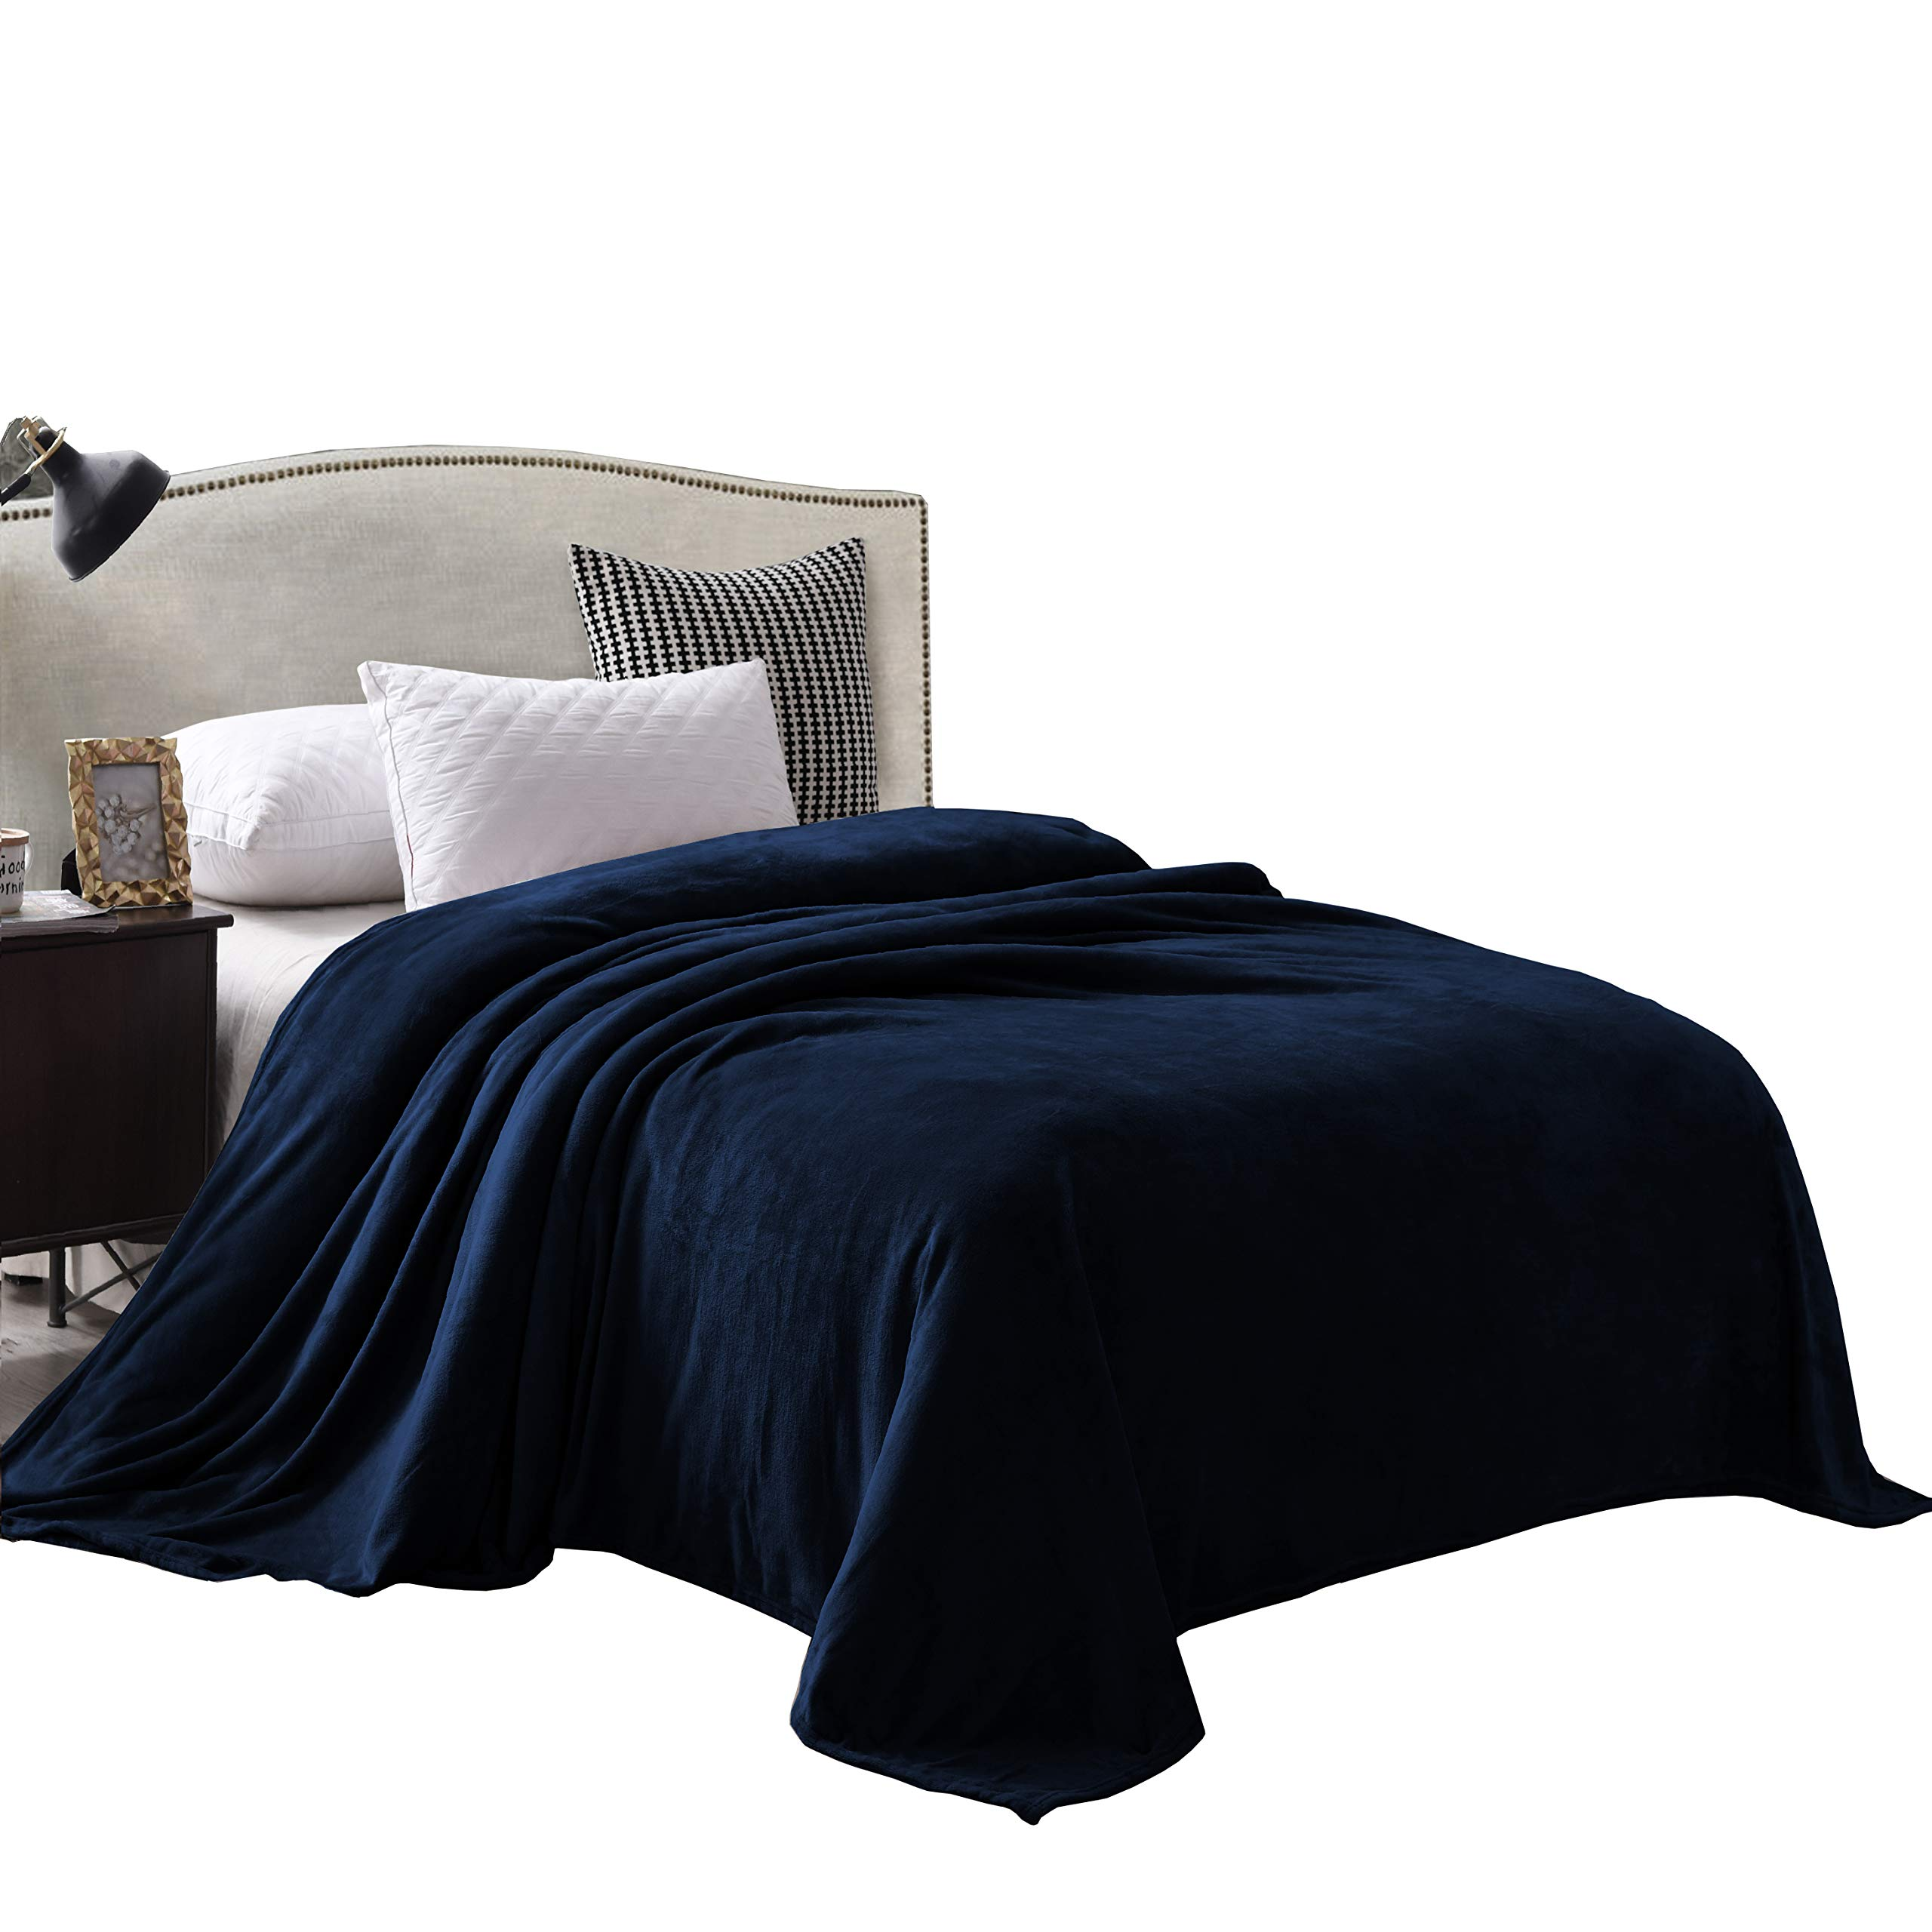 """Exclusivo Mezcla Super Soft King Size Flannel Fleece Blanket as Bed Cover/Bedspread/Coverlet(90"""" x 104"""", Navy Blue) - Plush, Lightweight, Warm and Cozy"""